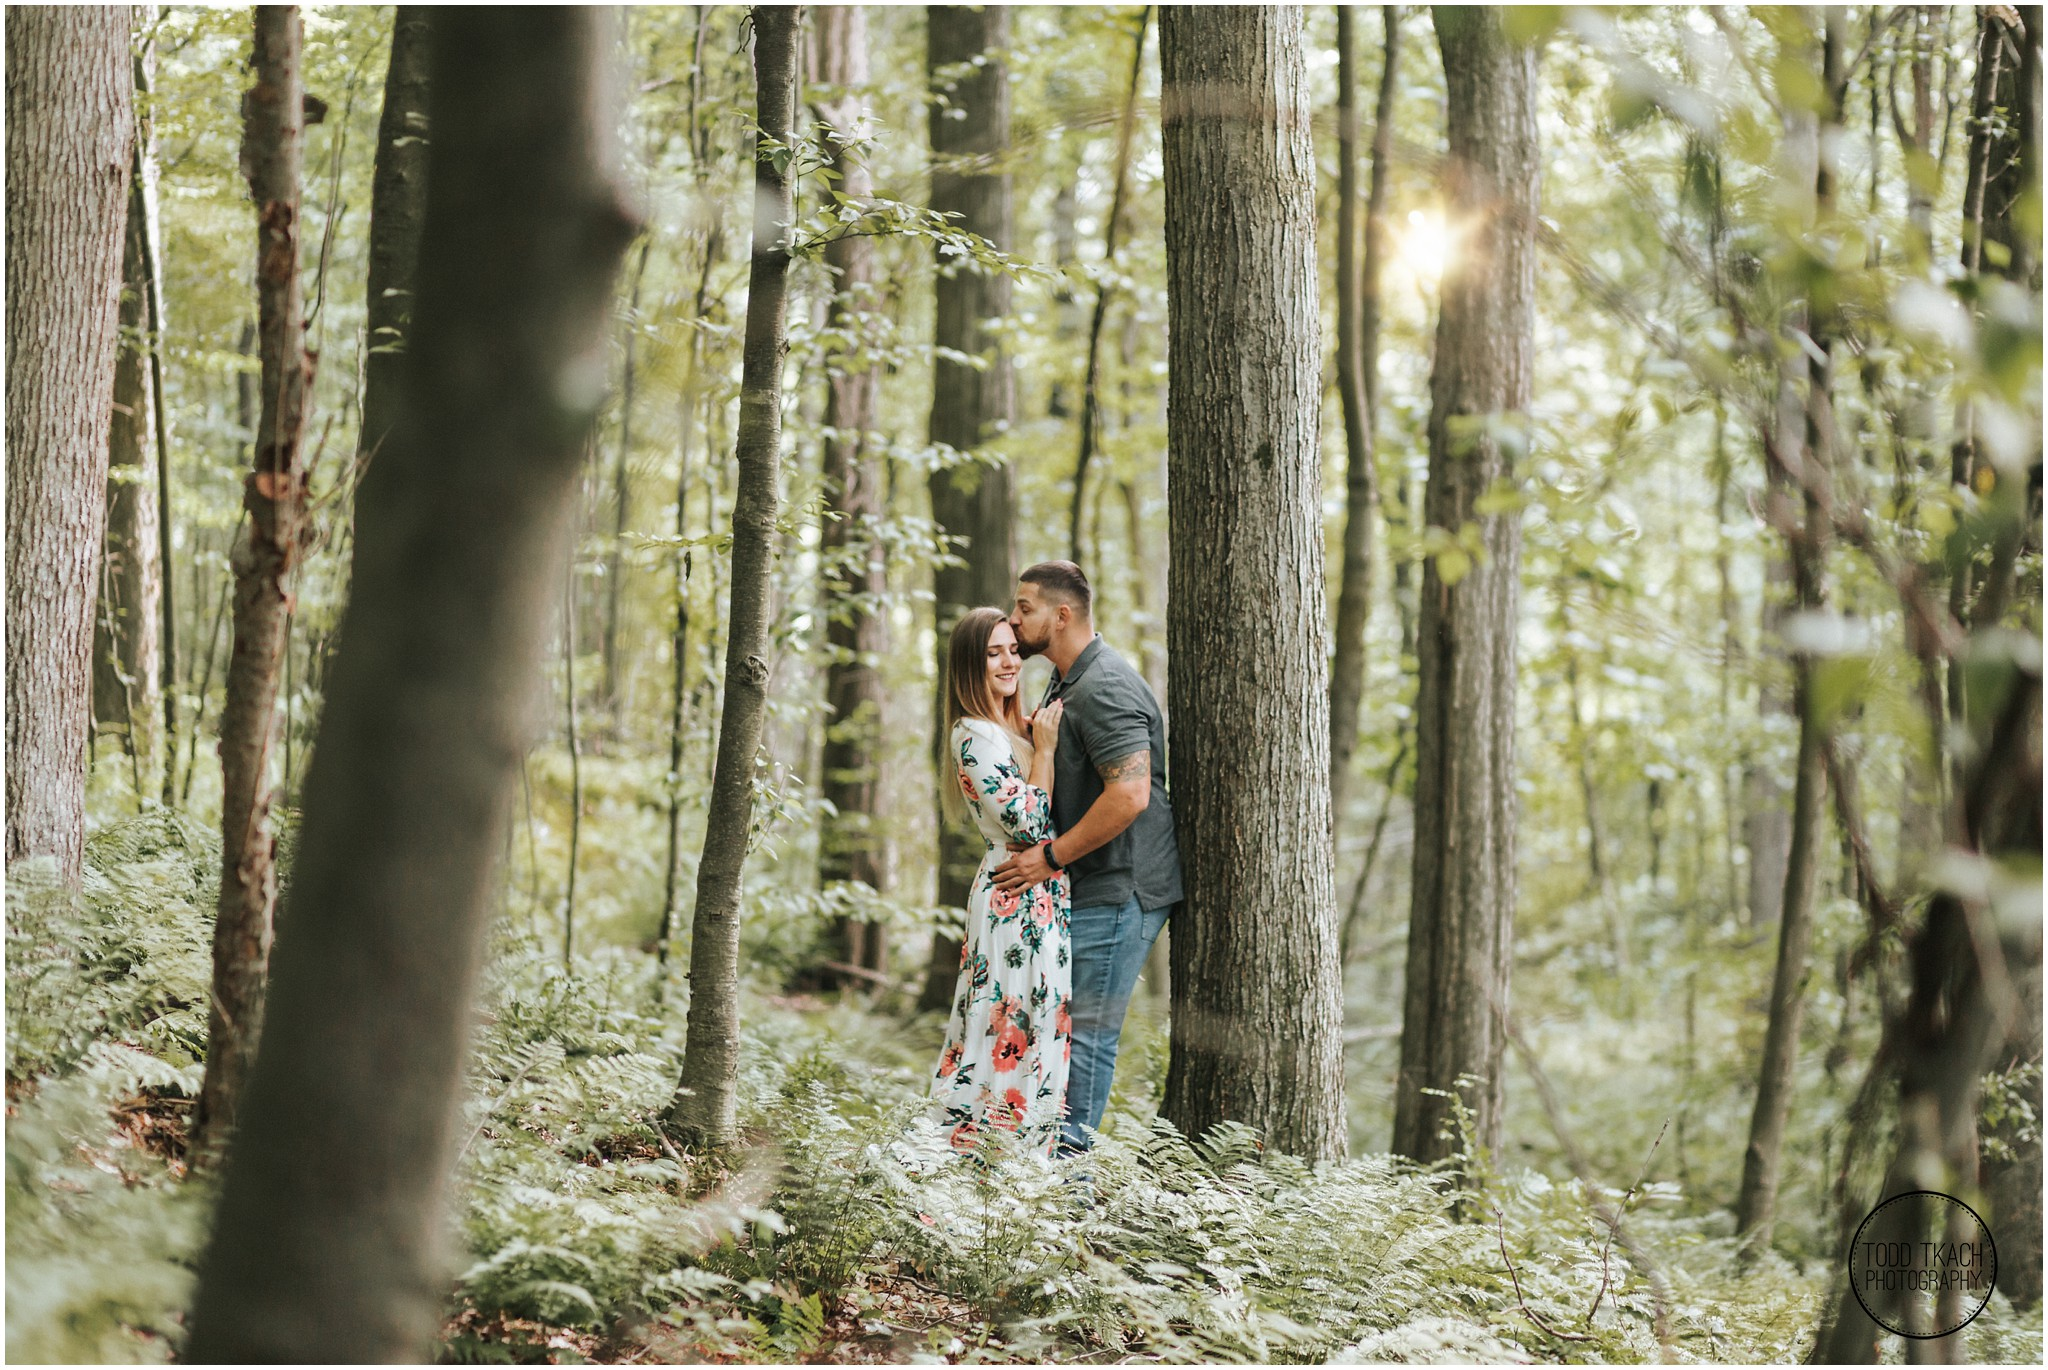 Kim & Brandon Engagement - Sunlight Forest Kiss Portrait